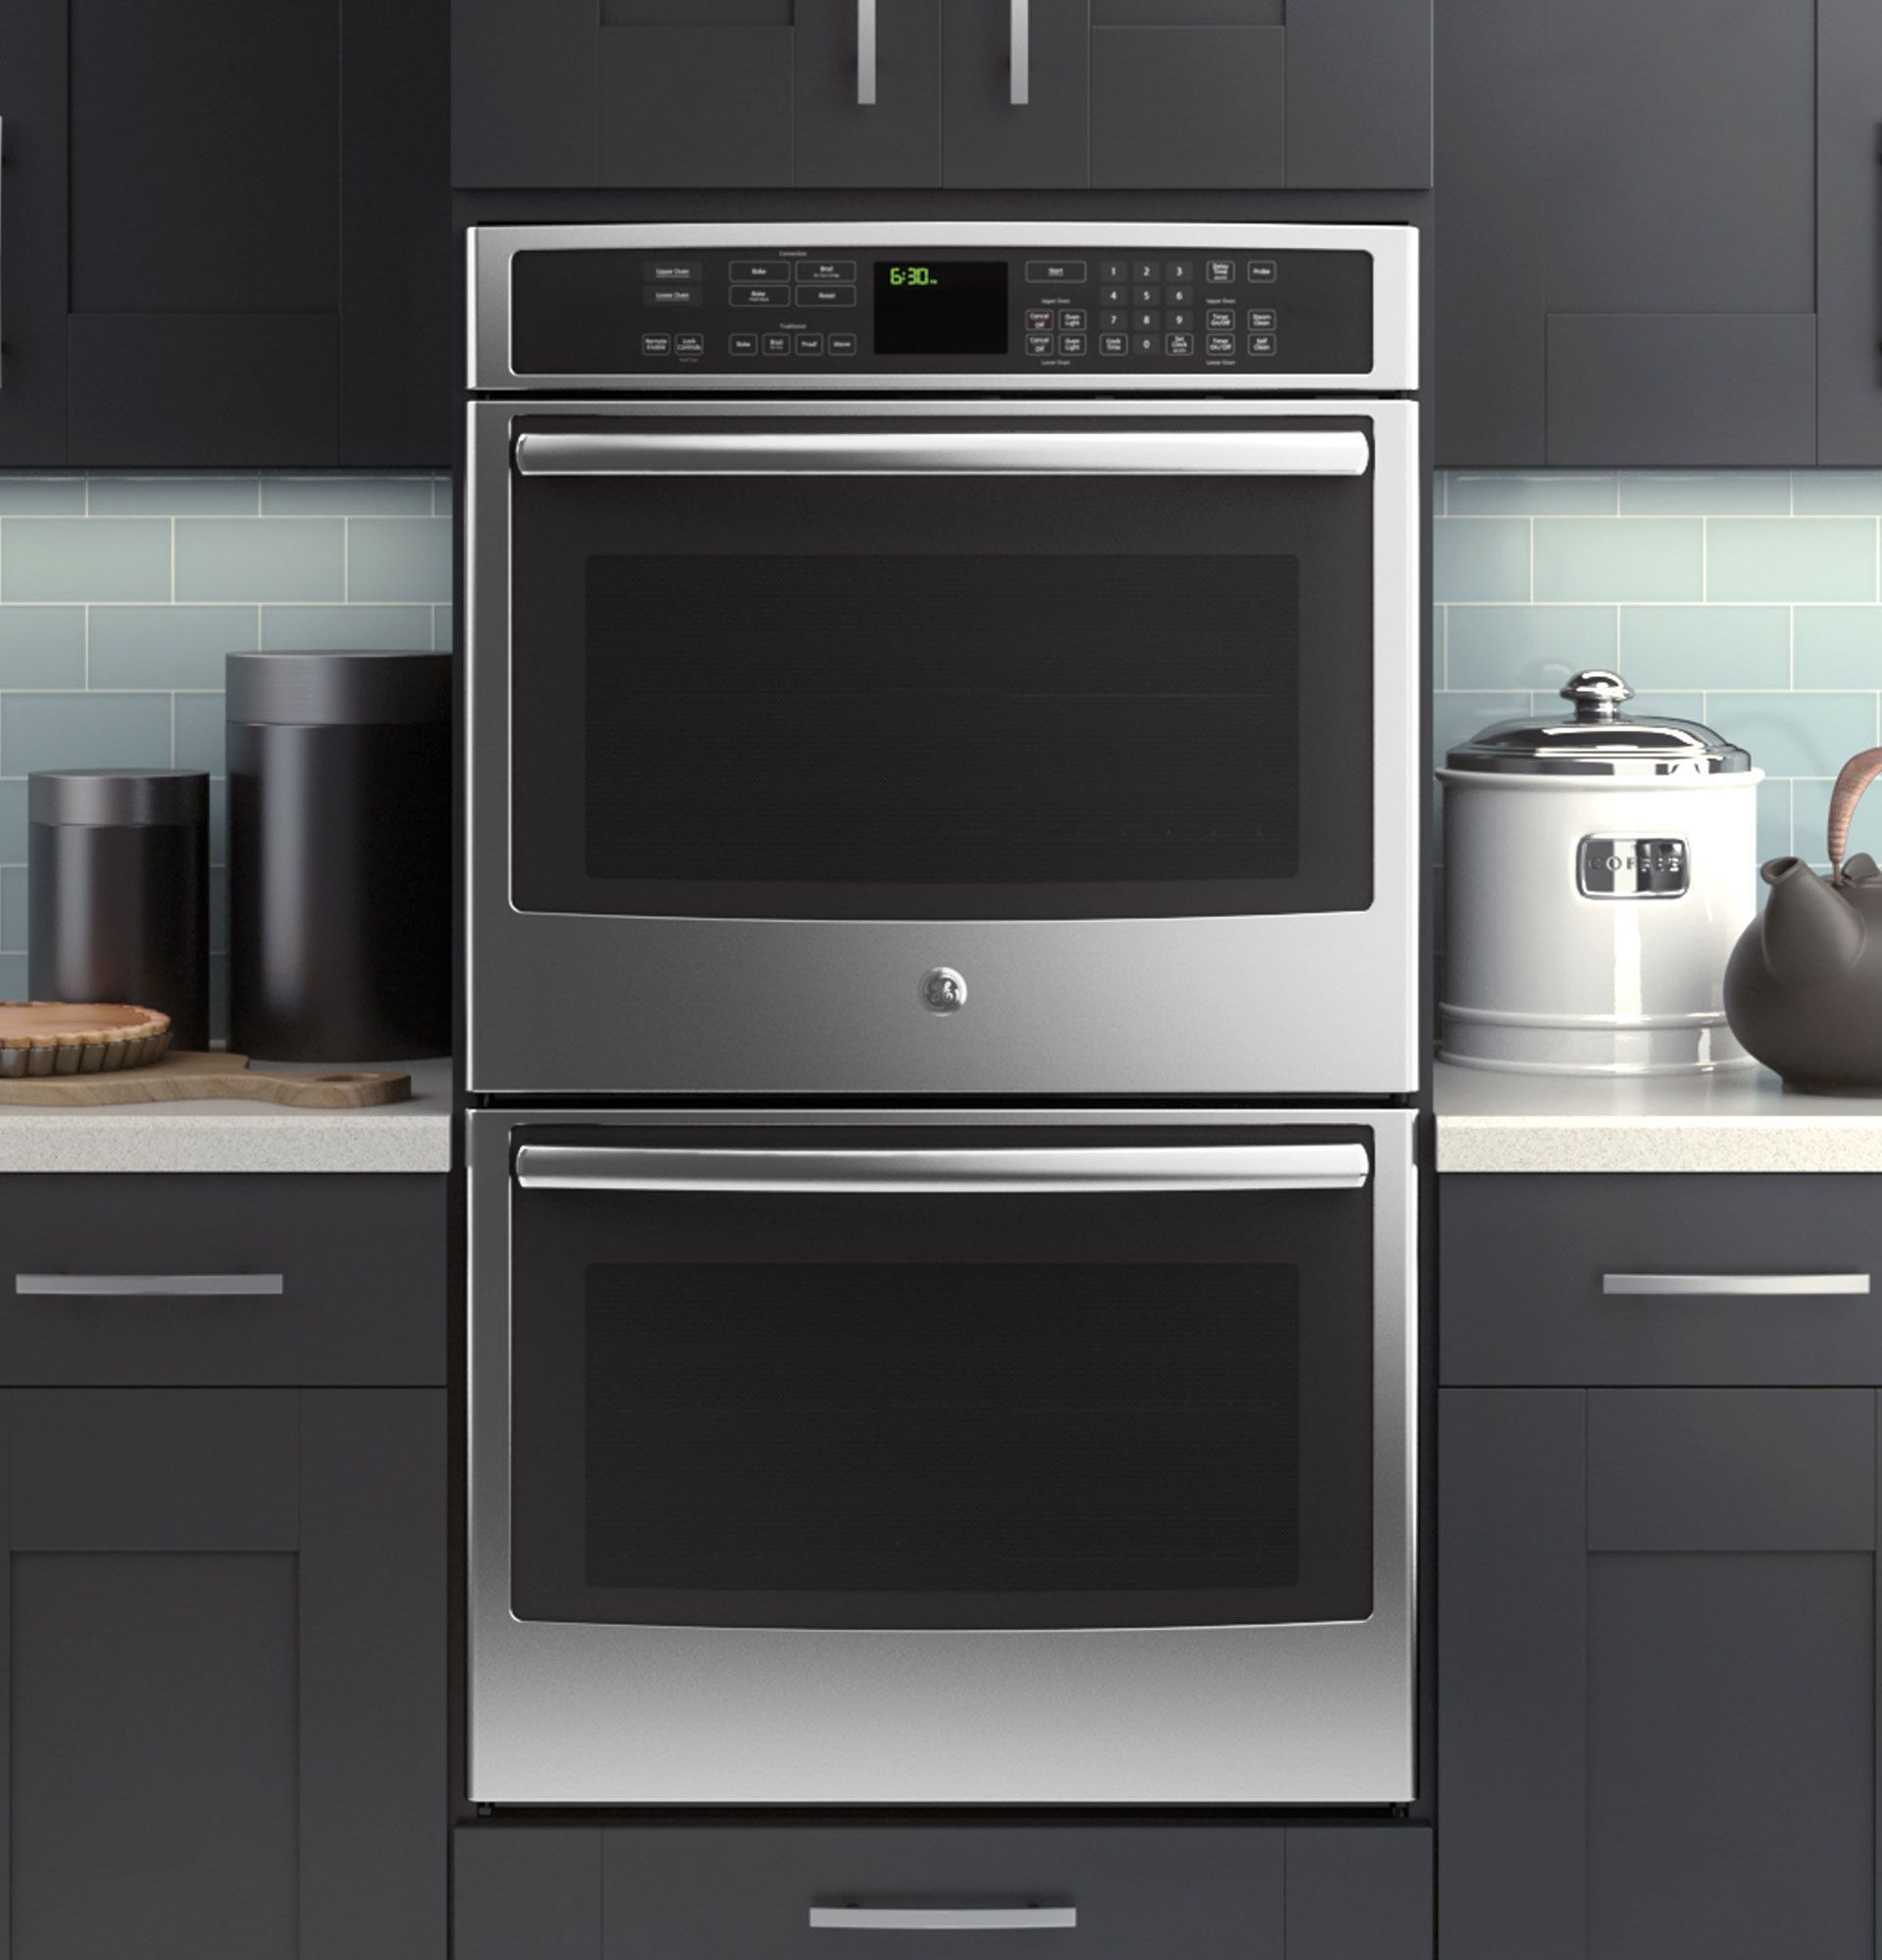 New High-Tech Kitchen Appliances We Love | Wall ovens, Kitchens and ...